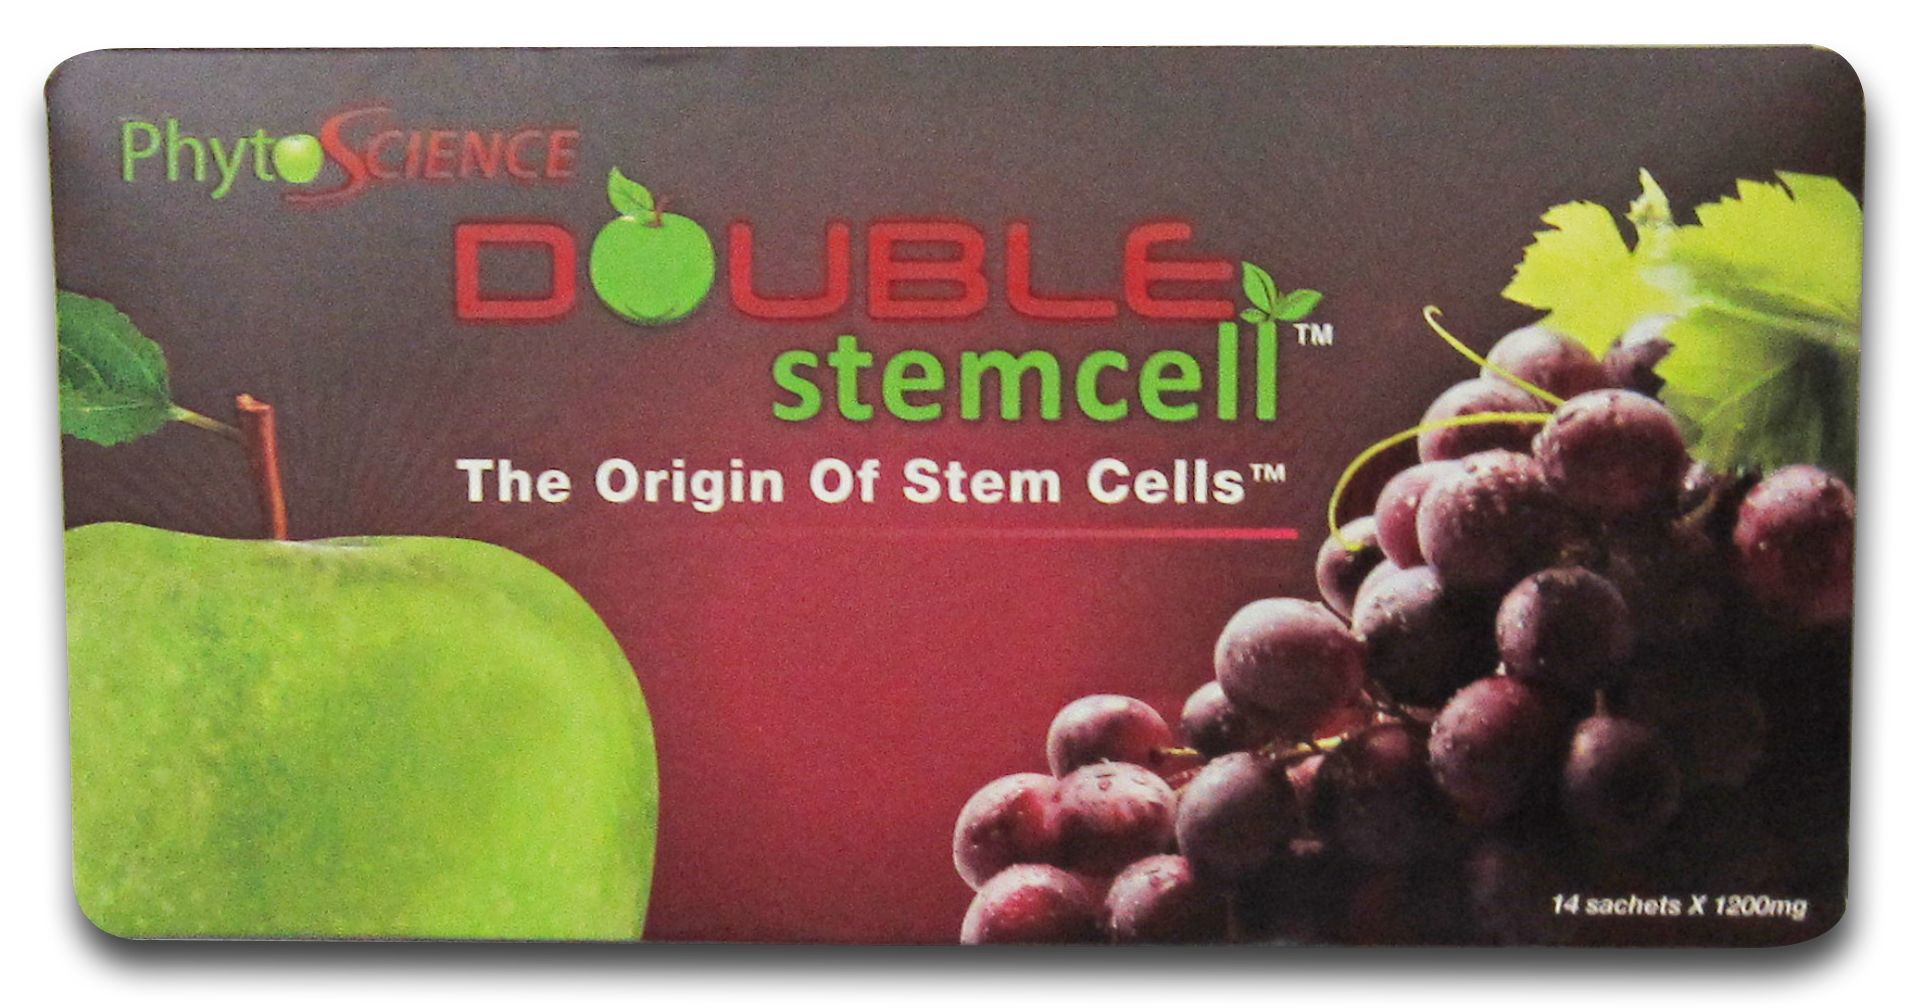 Phyto Science Double Stem Cell.